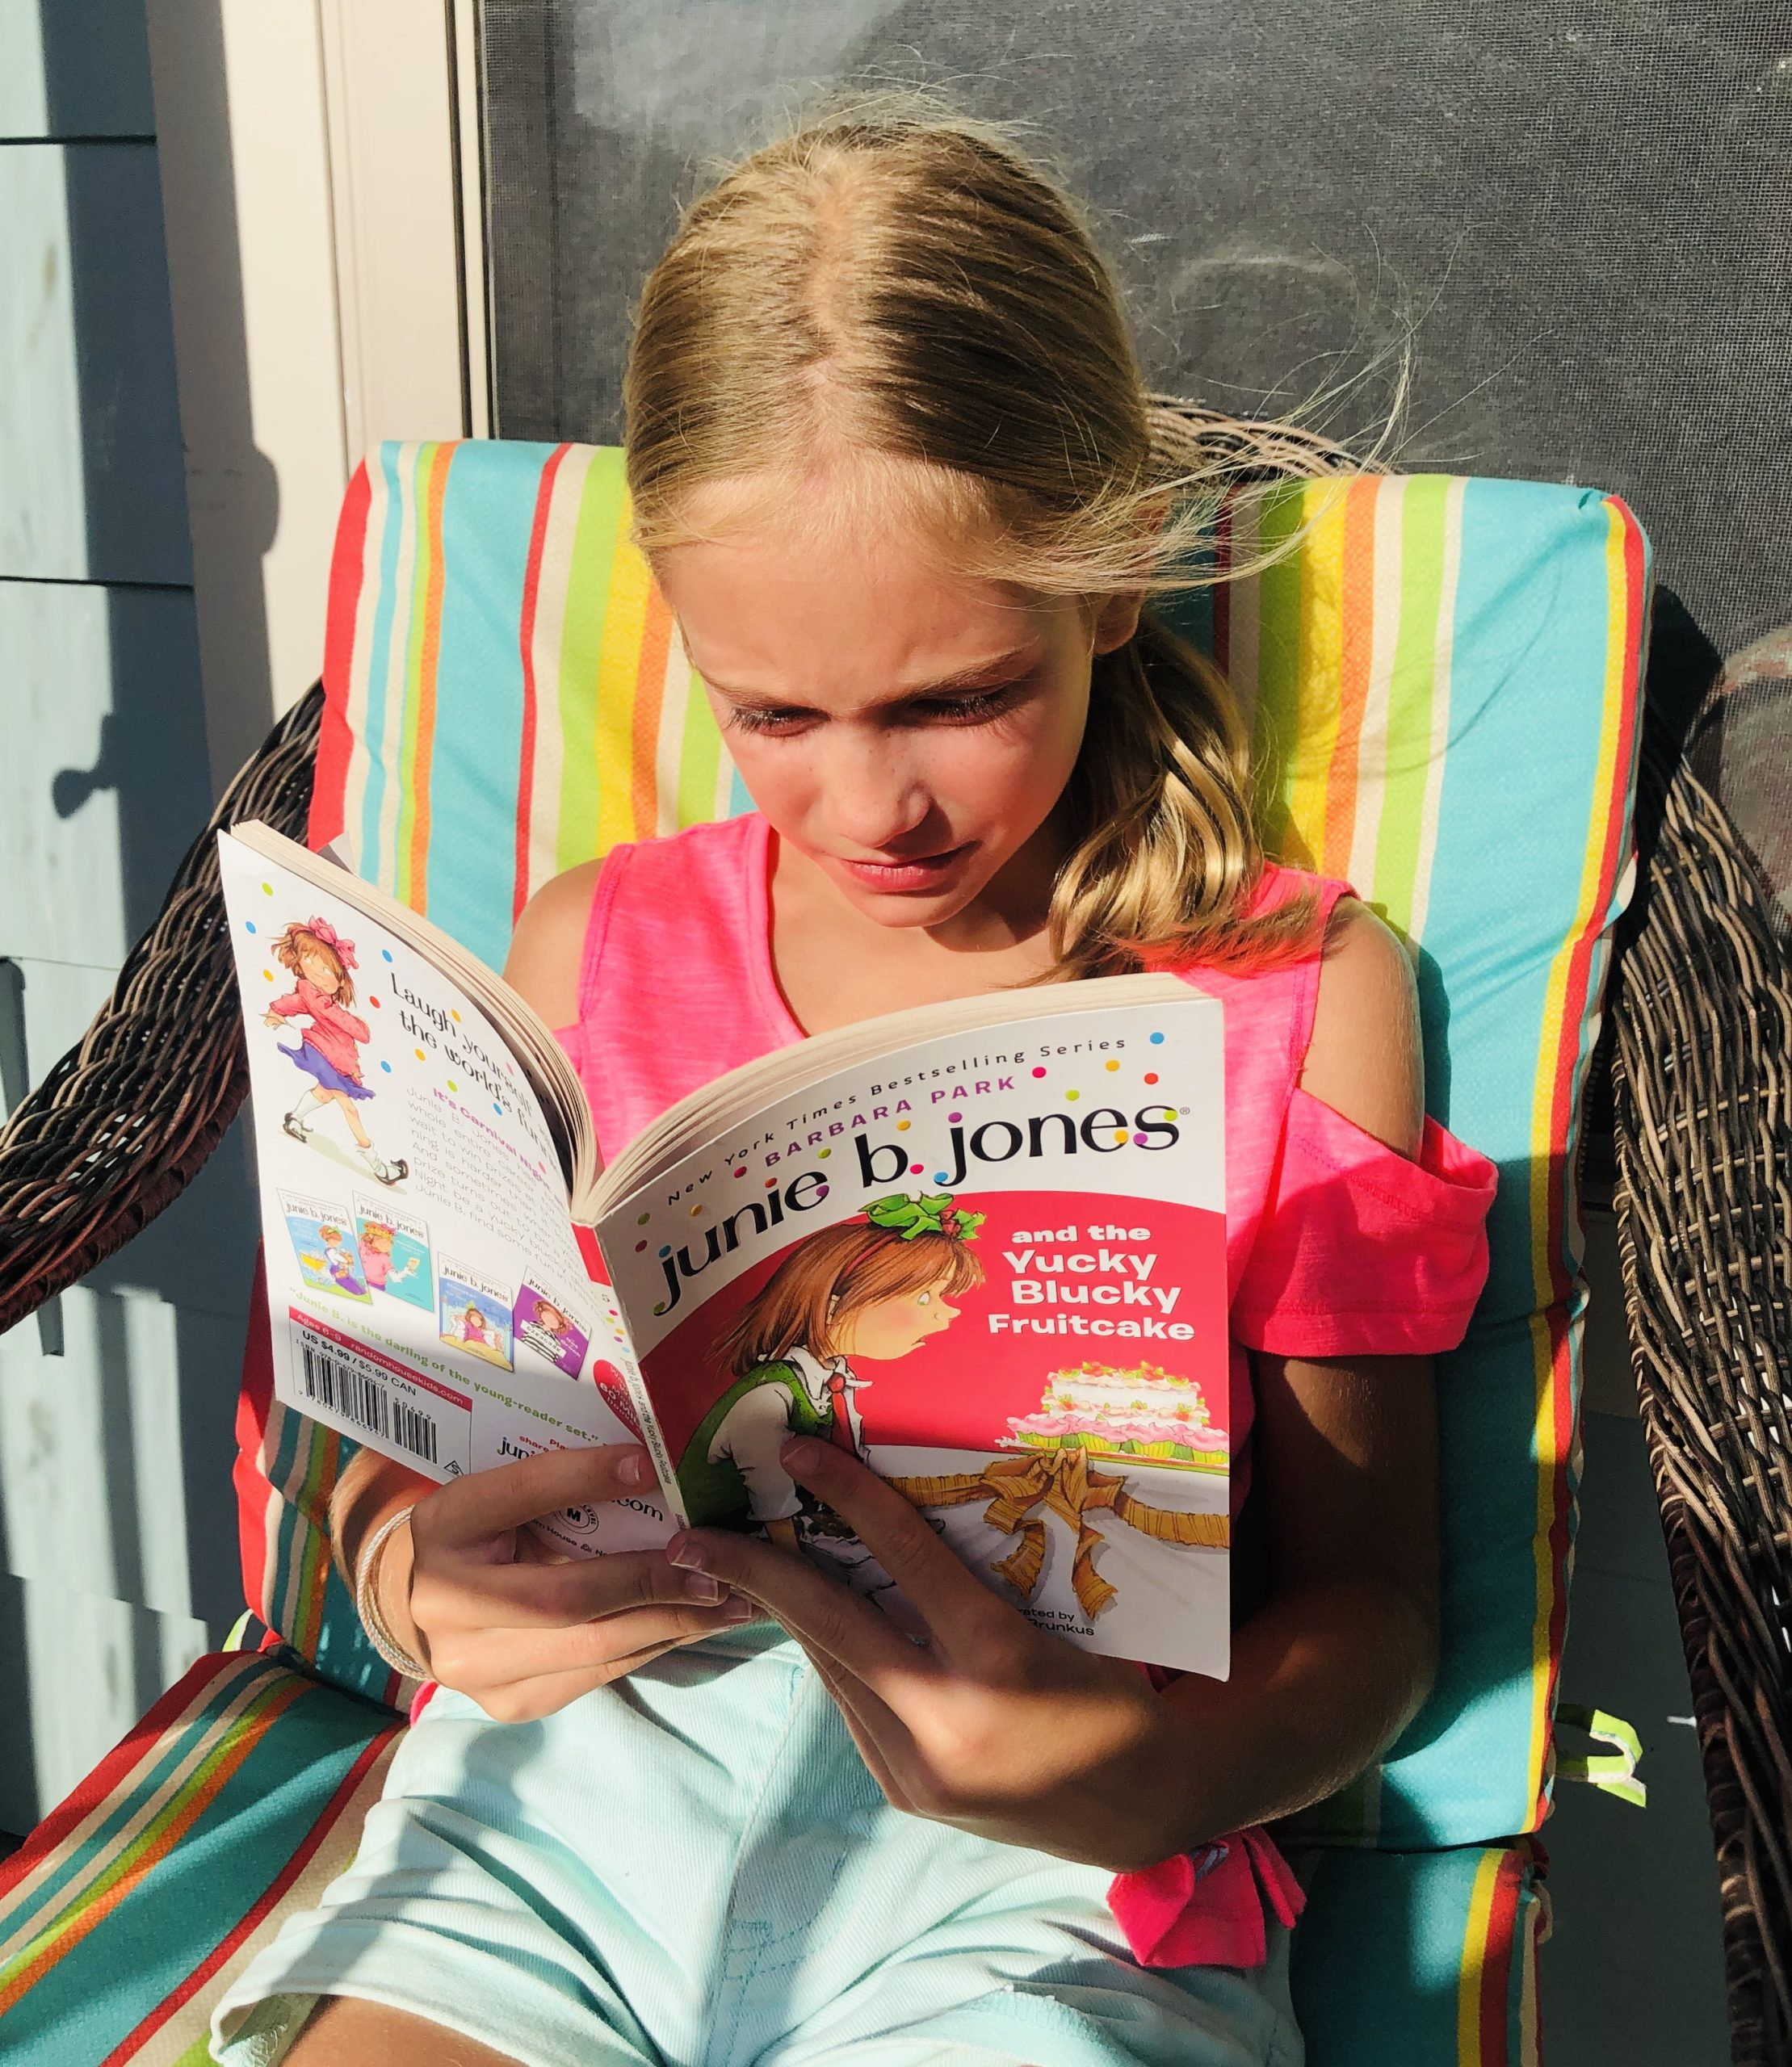 Blonde haired girl reading the book, Junie B. Jones and the Yucky Blucky Fruitcake for the children's book review.